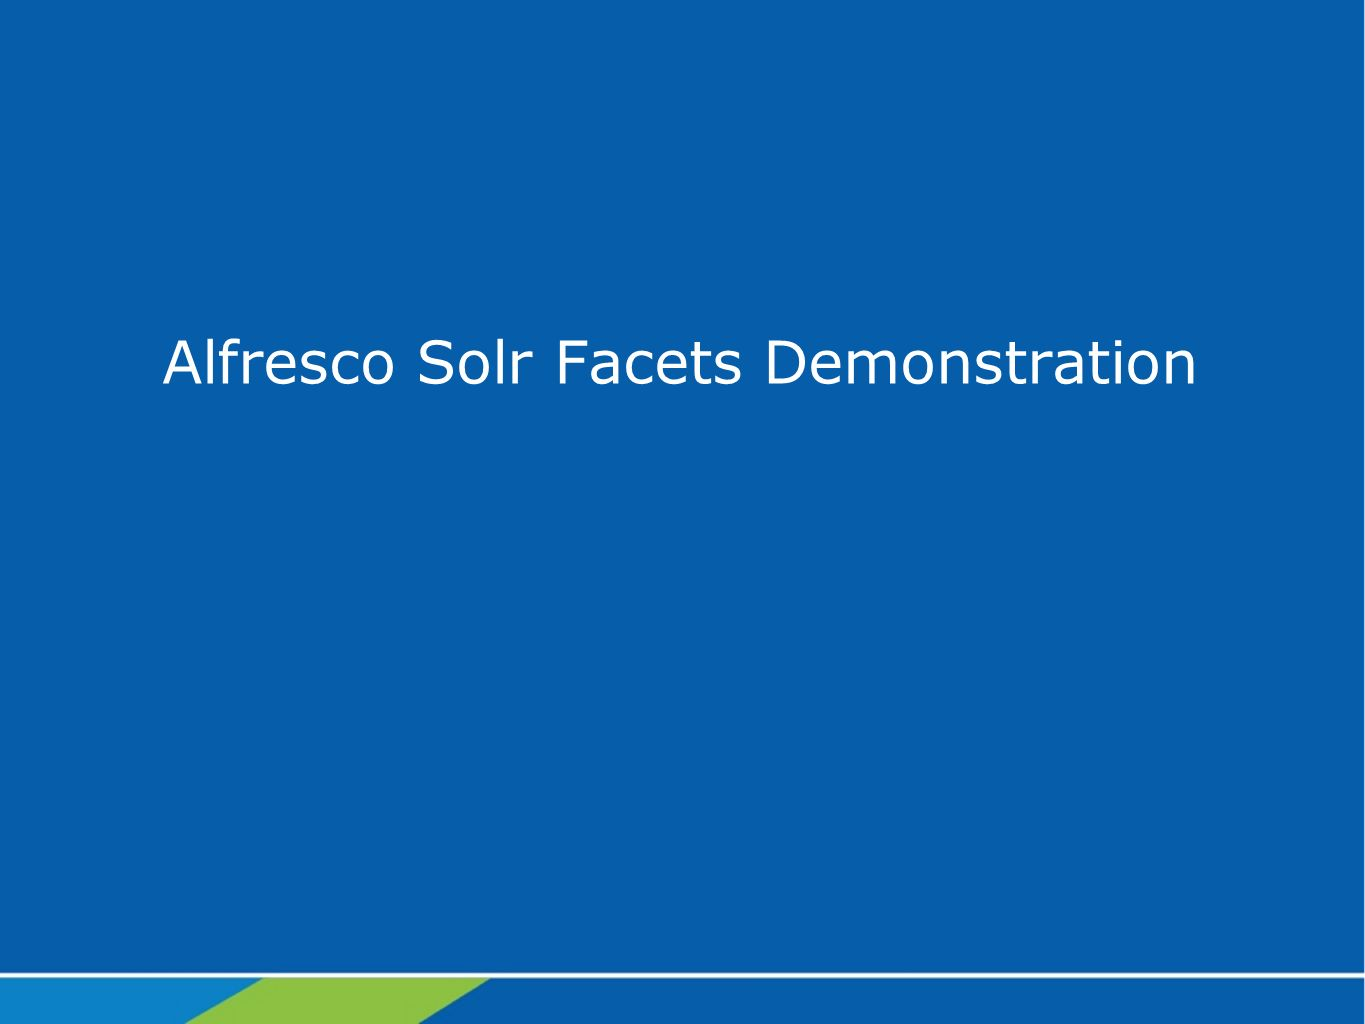 Alfresco Solr Facets Demonstration